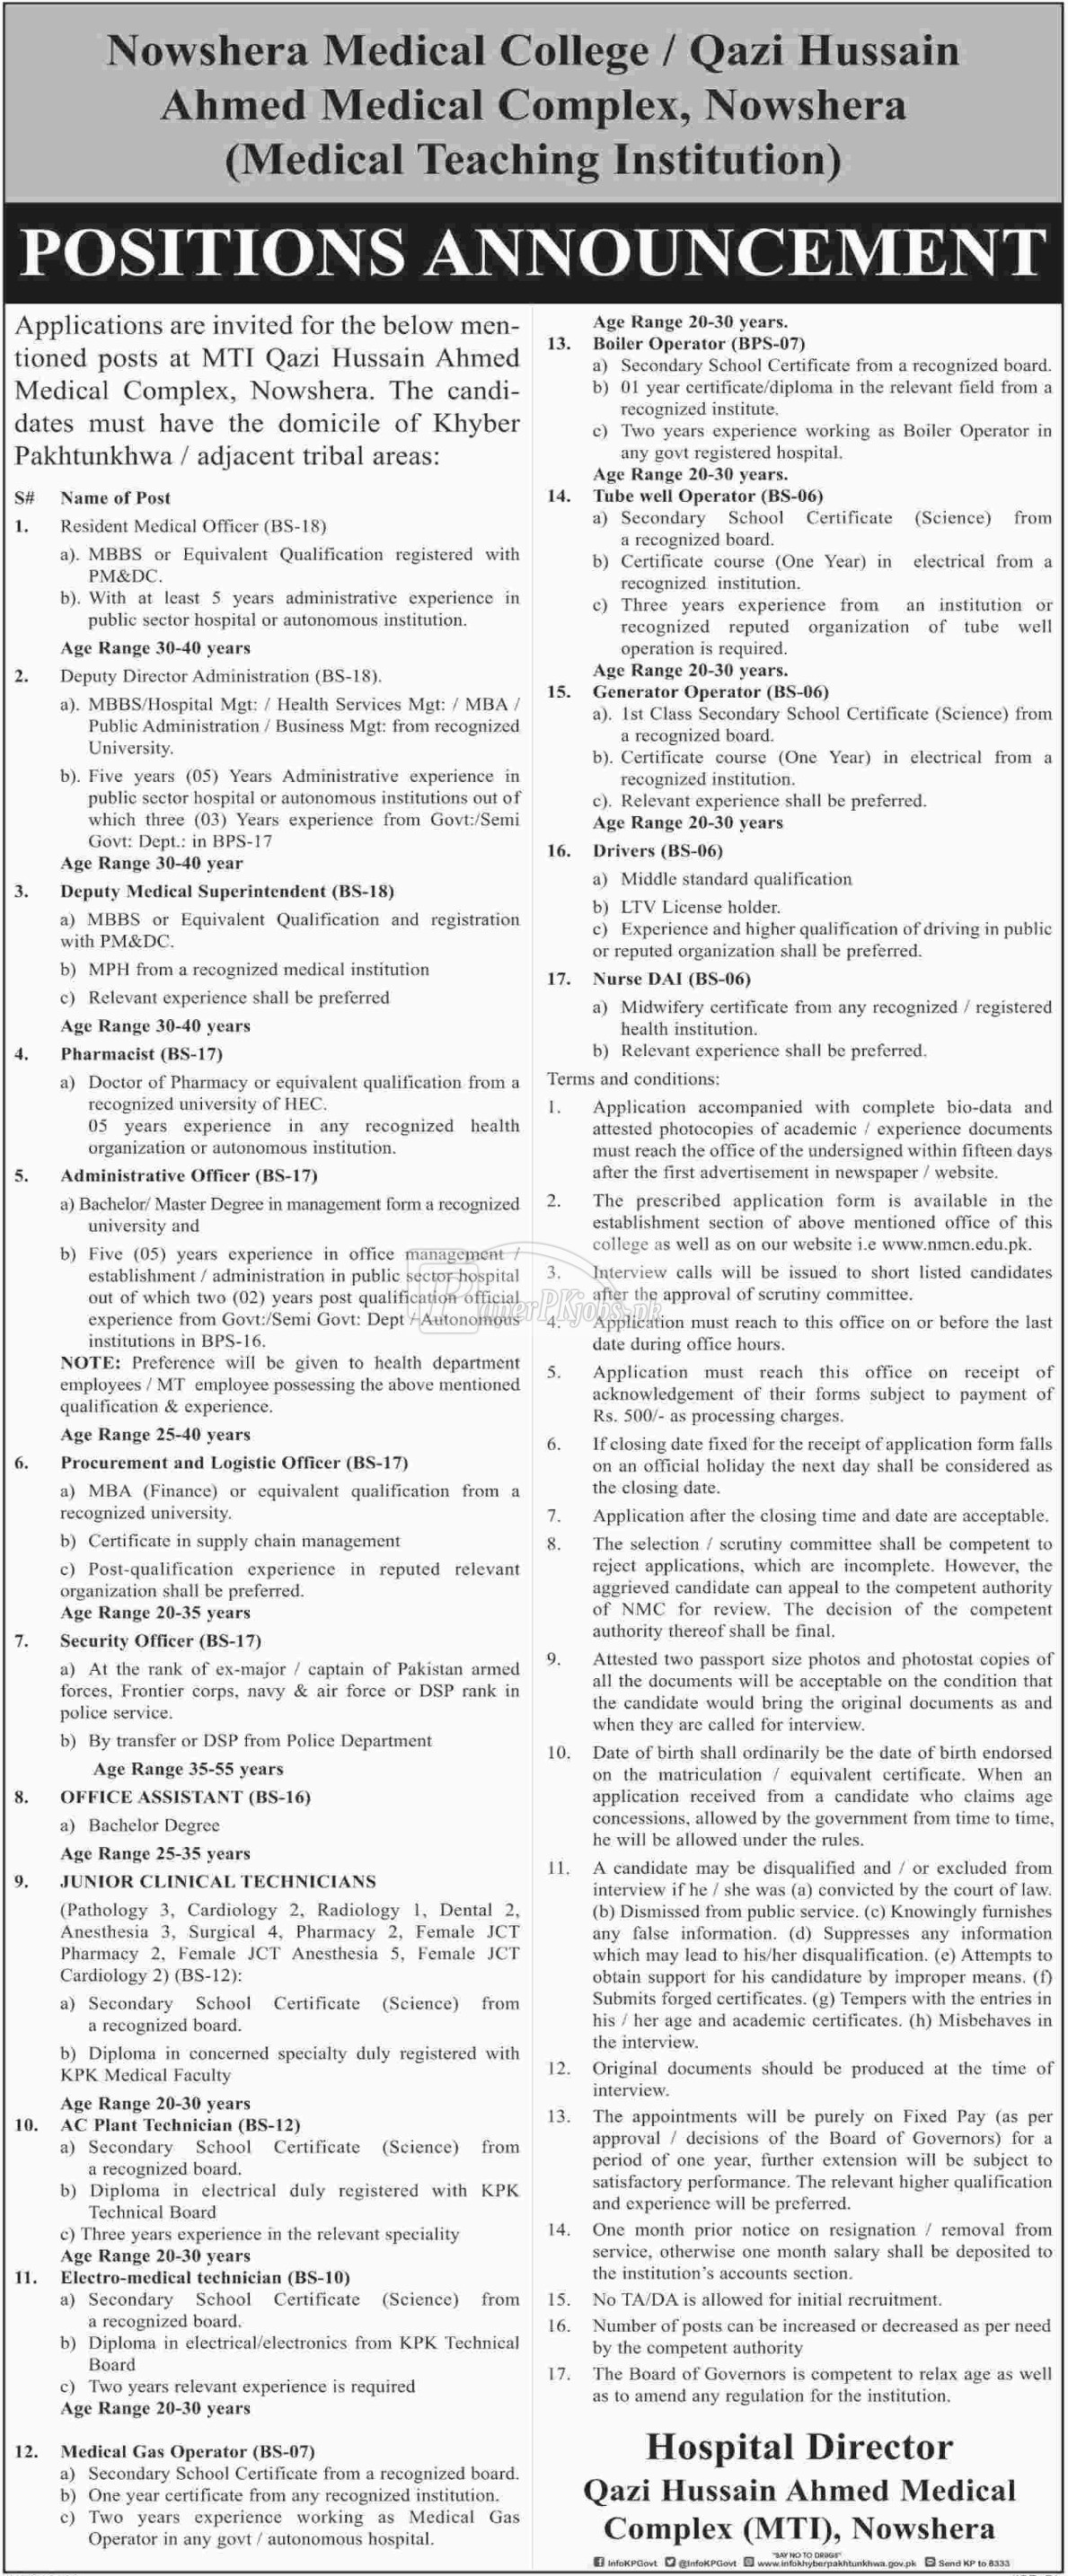 Qazi Hussain Ahmed Medical Complex MTI Nowshera Jobs 2018